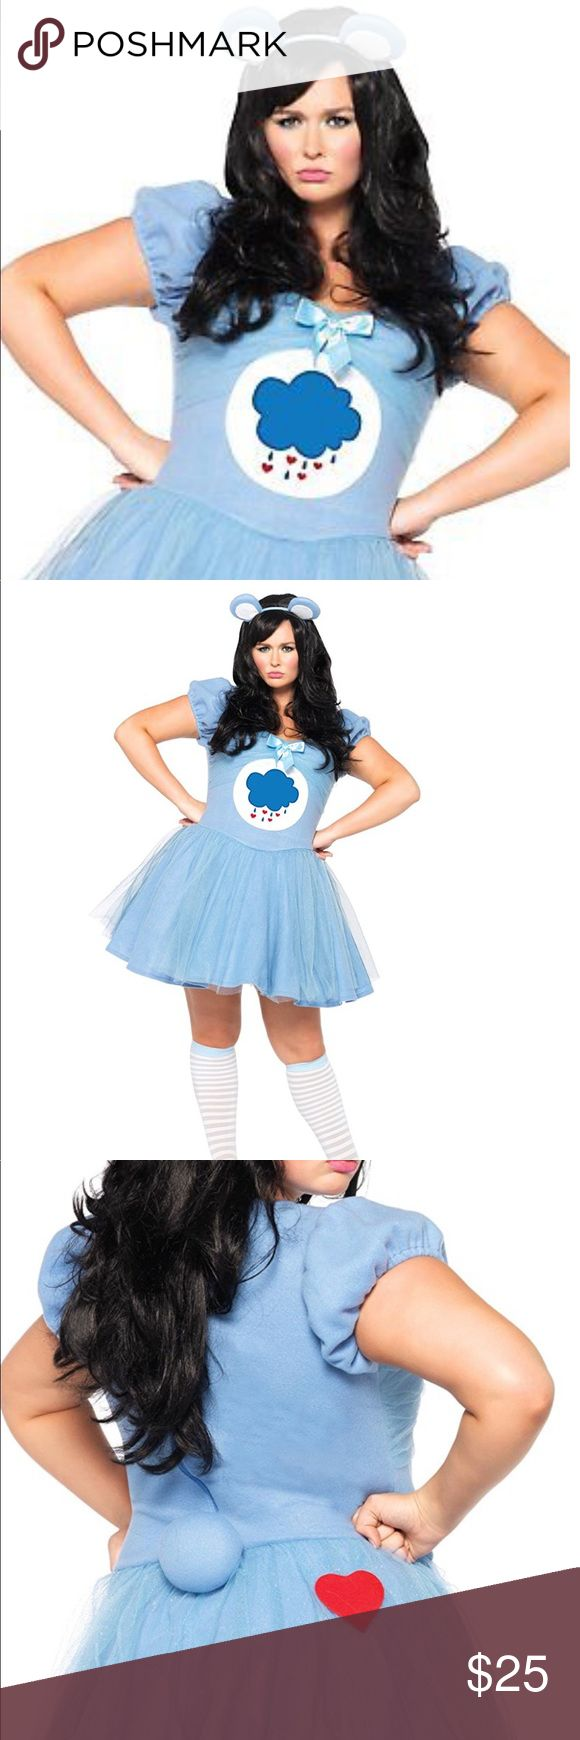 Plus size care bear costume Only worn once!!  Leggings and shoes not included. Only comes with dress and ears. Size 3X-4X Other